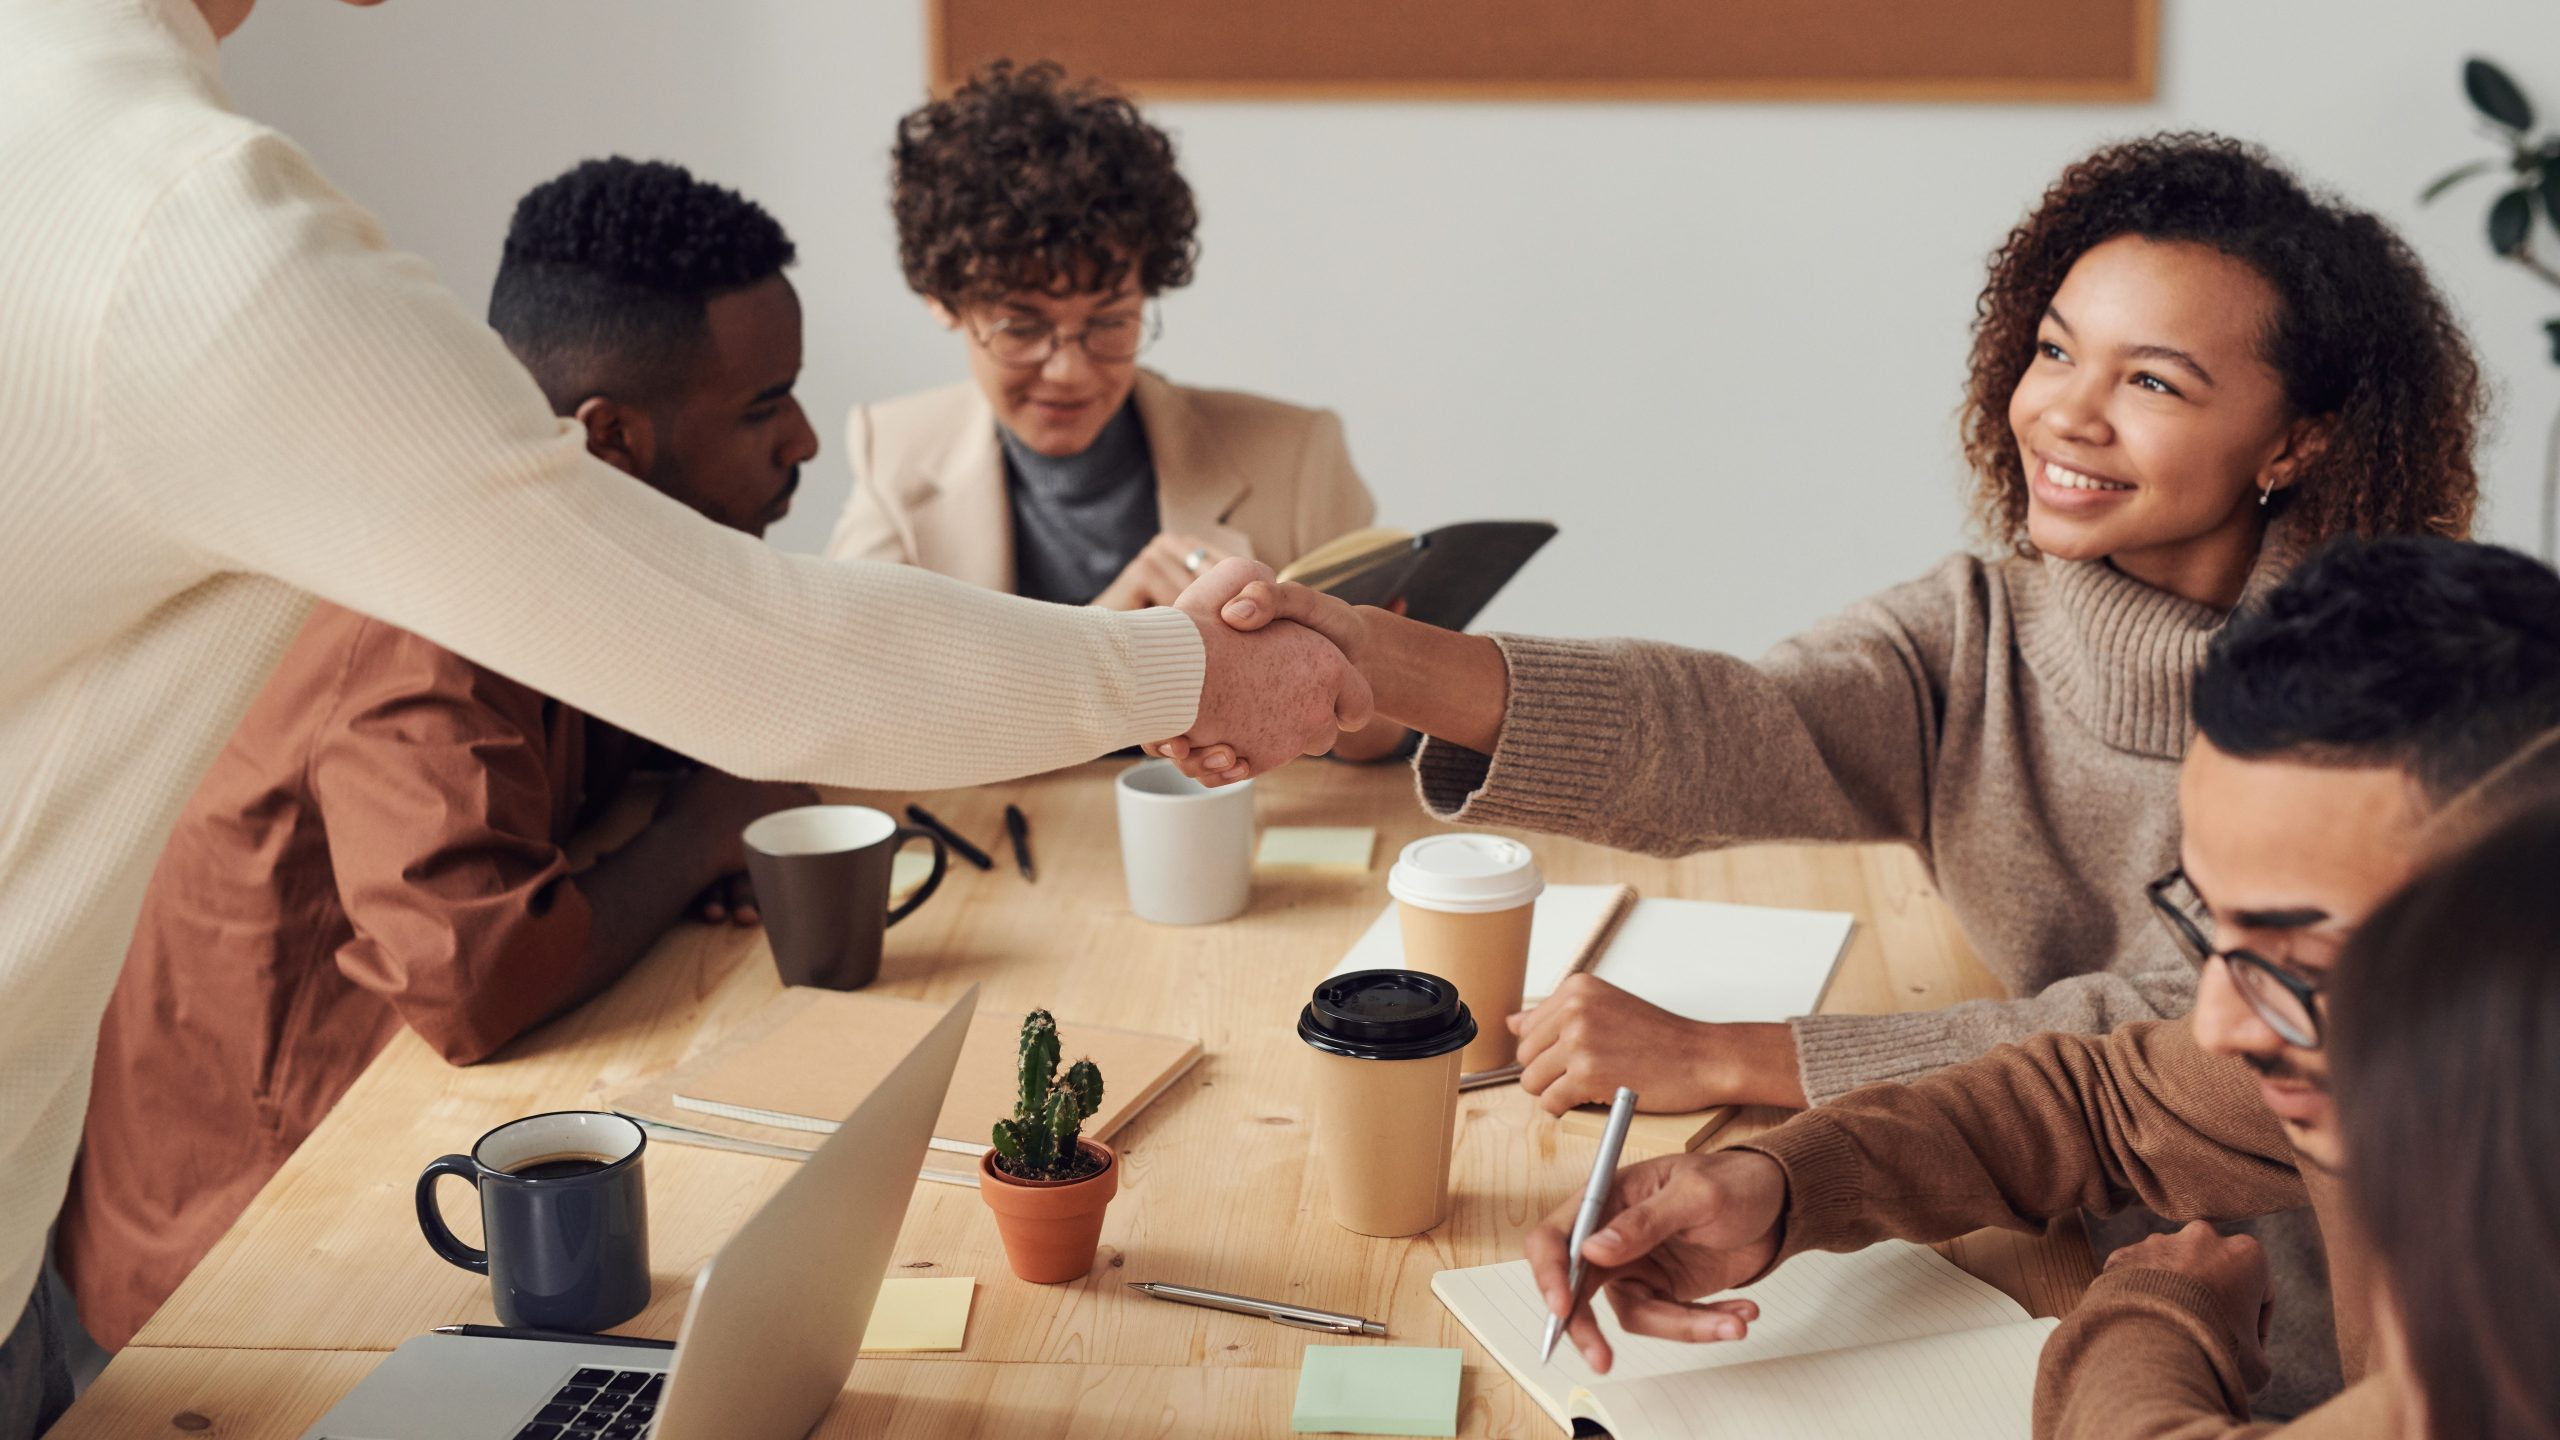 Hiring a Diverse Team Leads to Greater Profits, Studies Continue to Show